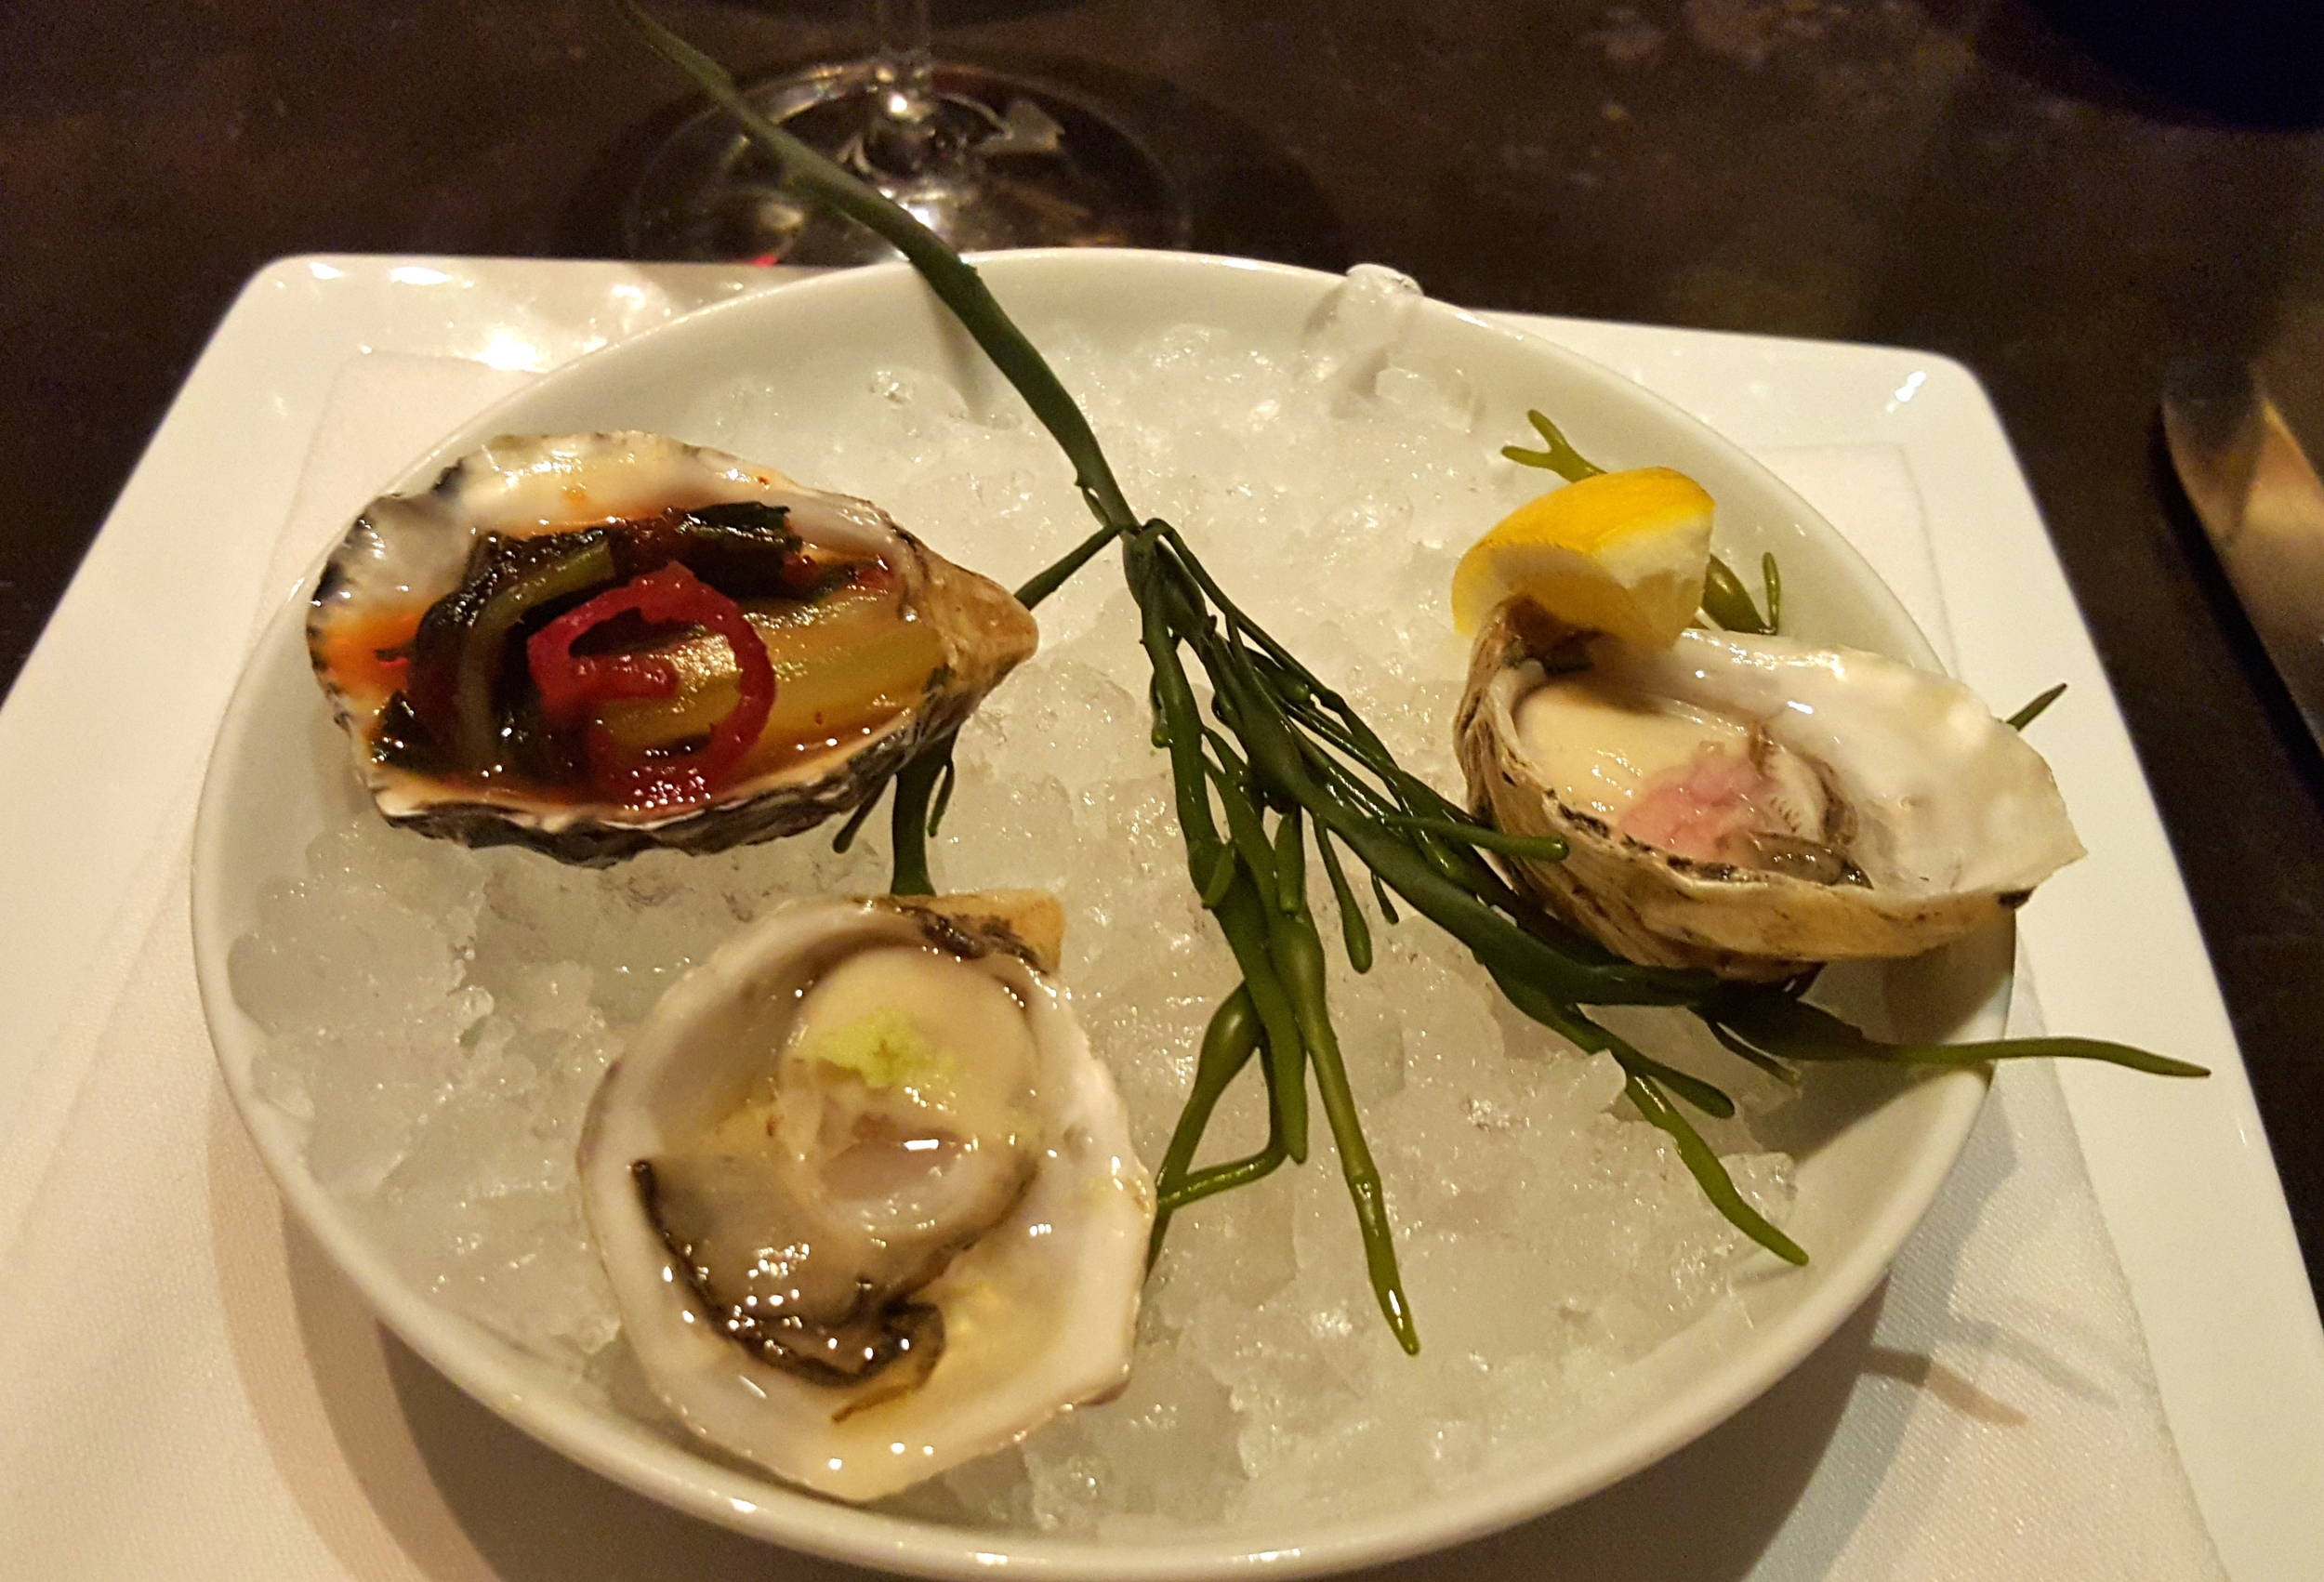 Oyster trio with kimchi, mignonette, and ponzu with wasabi